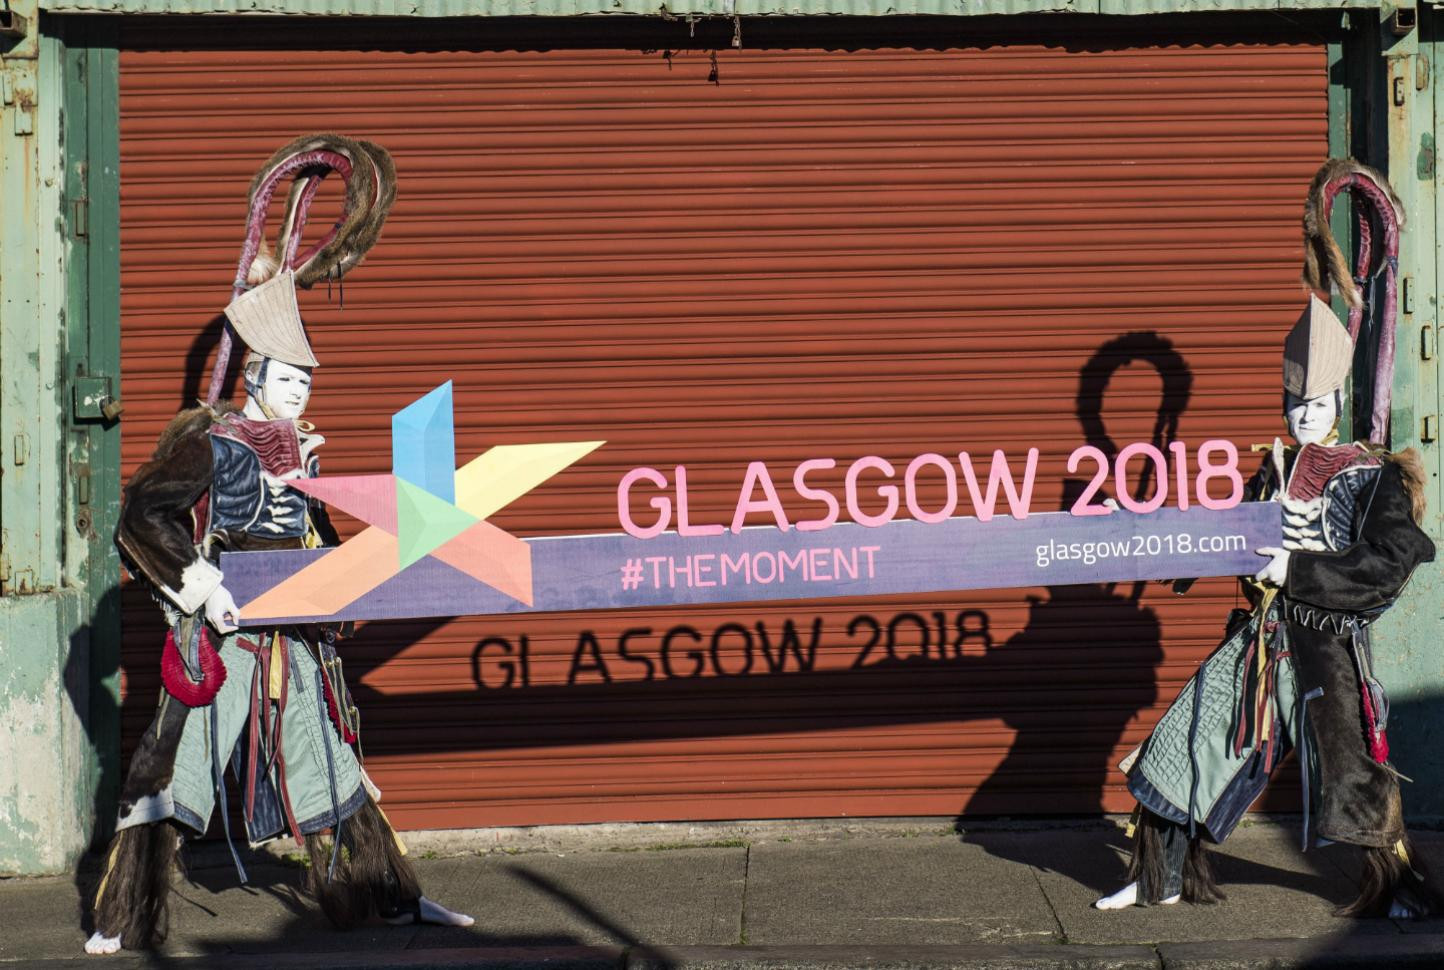 The cultural programme is aimed at showcasing music, visual art, street art, dance, theatre and digital art ©Glasgow 2018